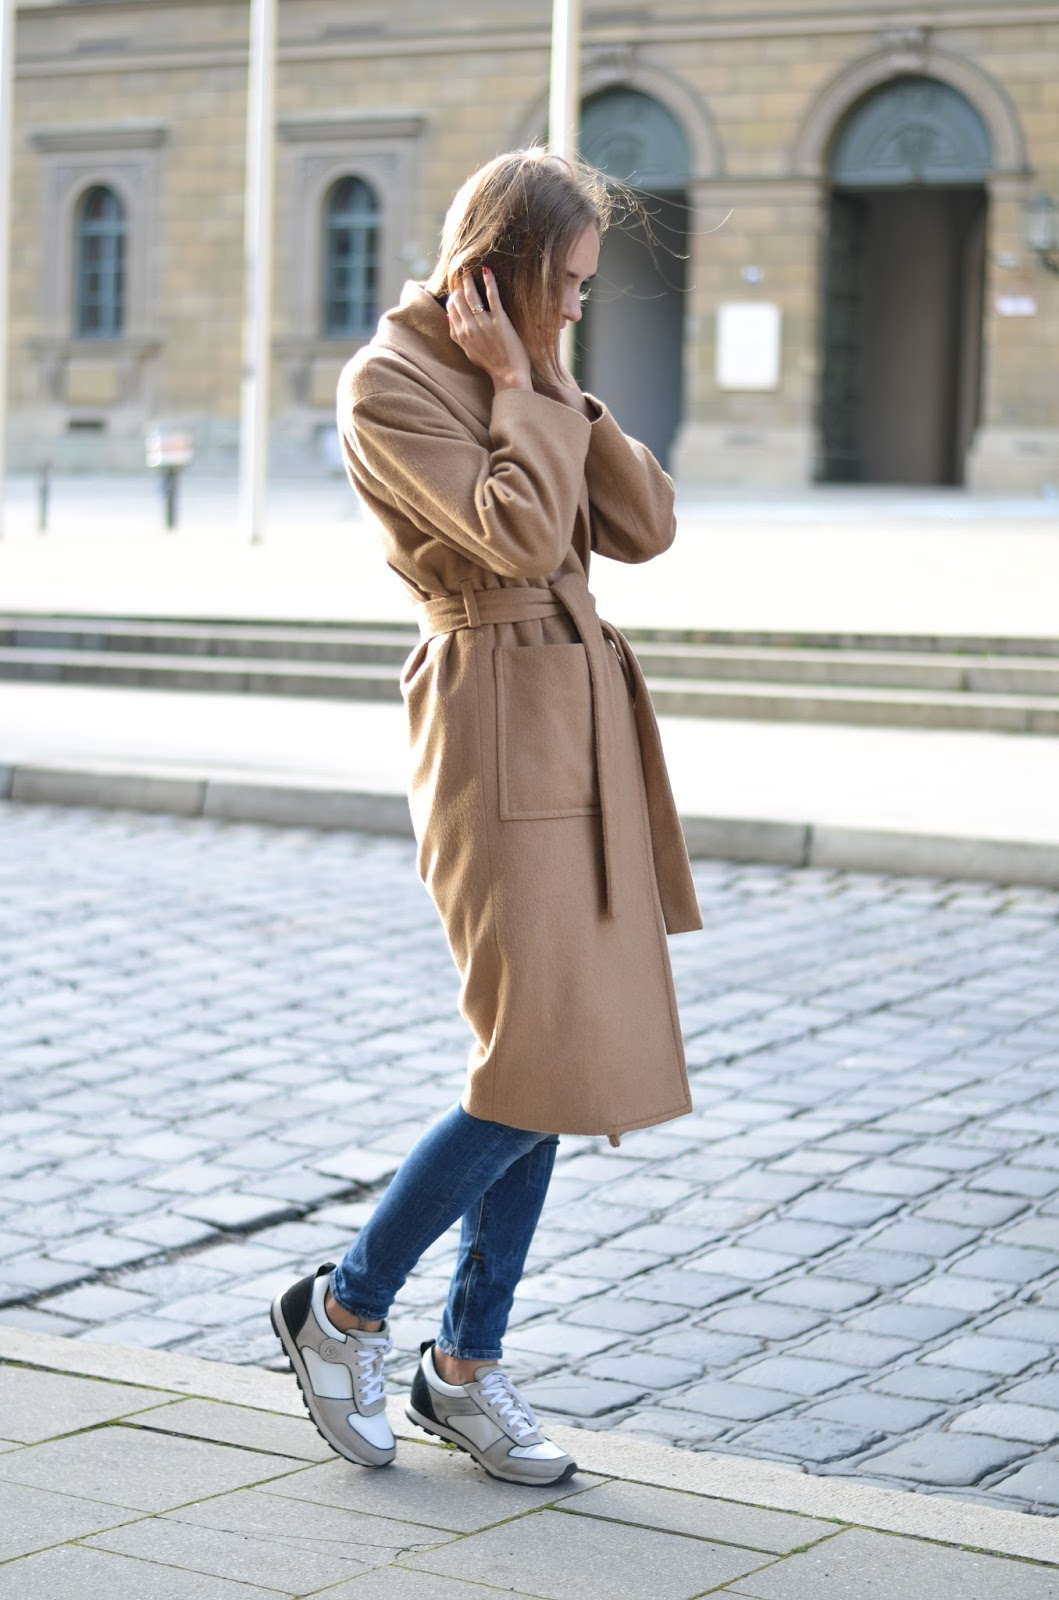 kristjaana mere minimalist camel coat outfit with sneakers